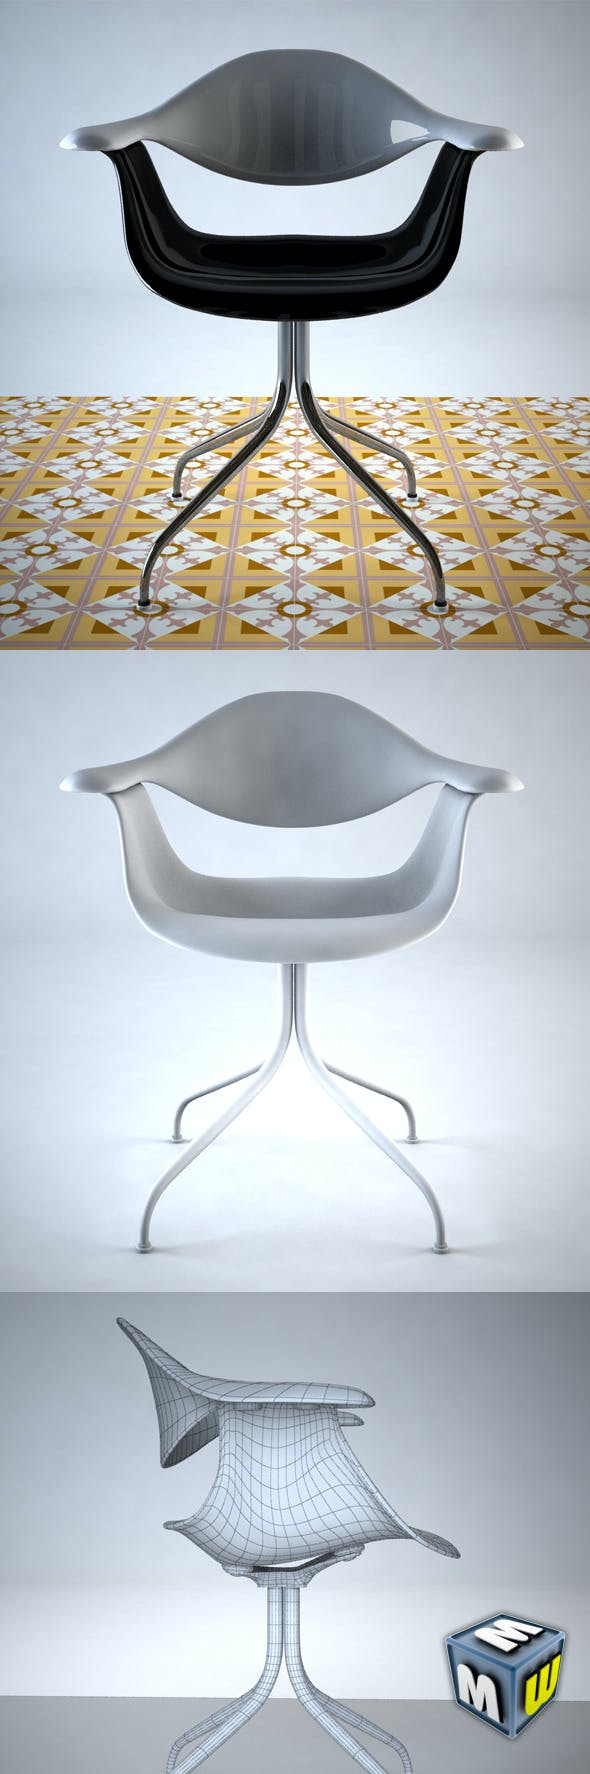 Nelson Swag Leg Chair Max 2011 - 3DOcean Item for Sale